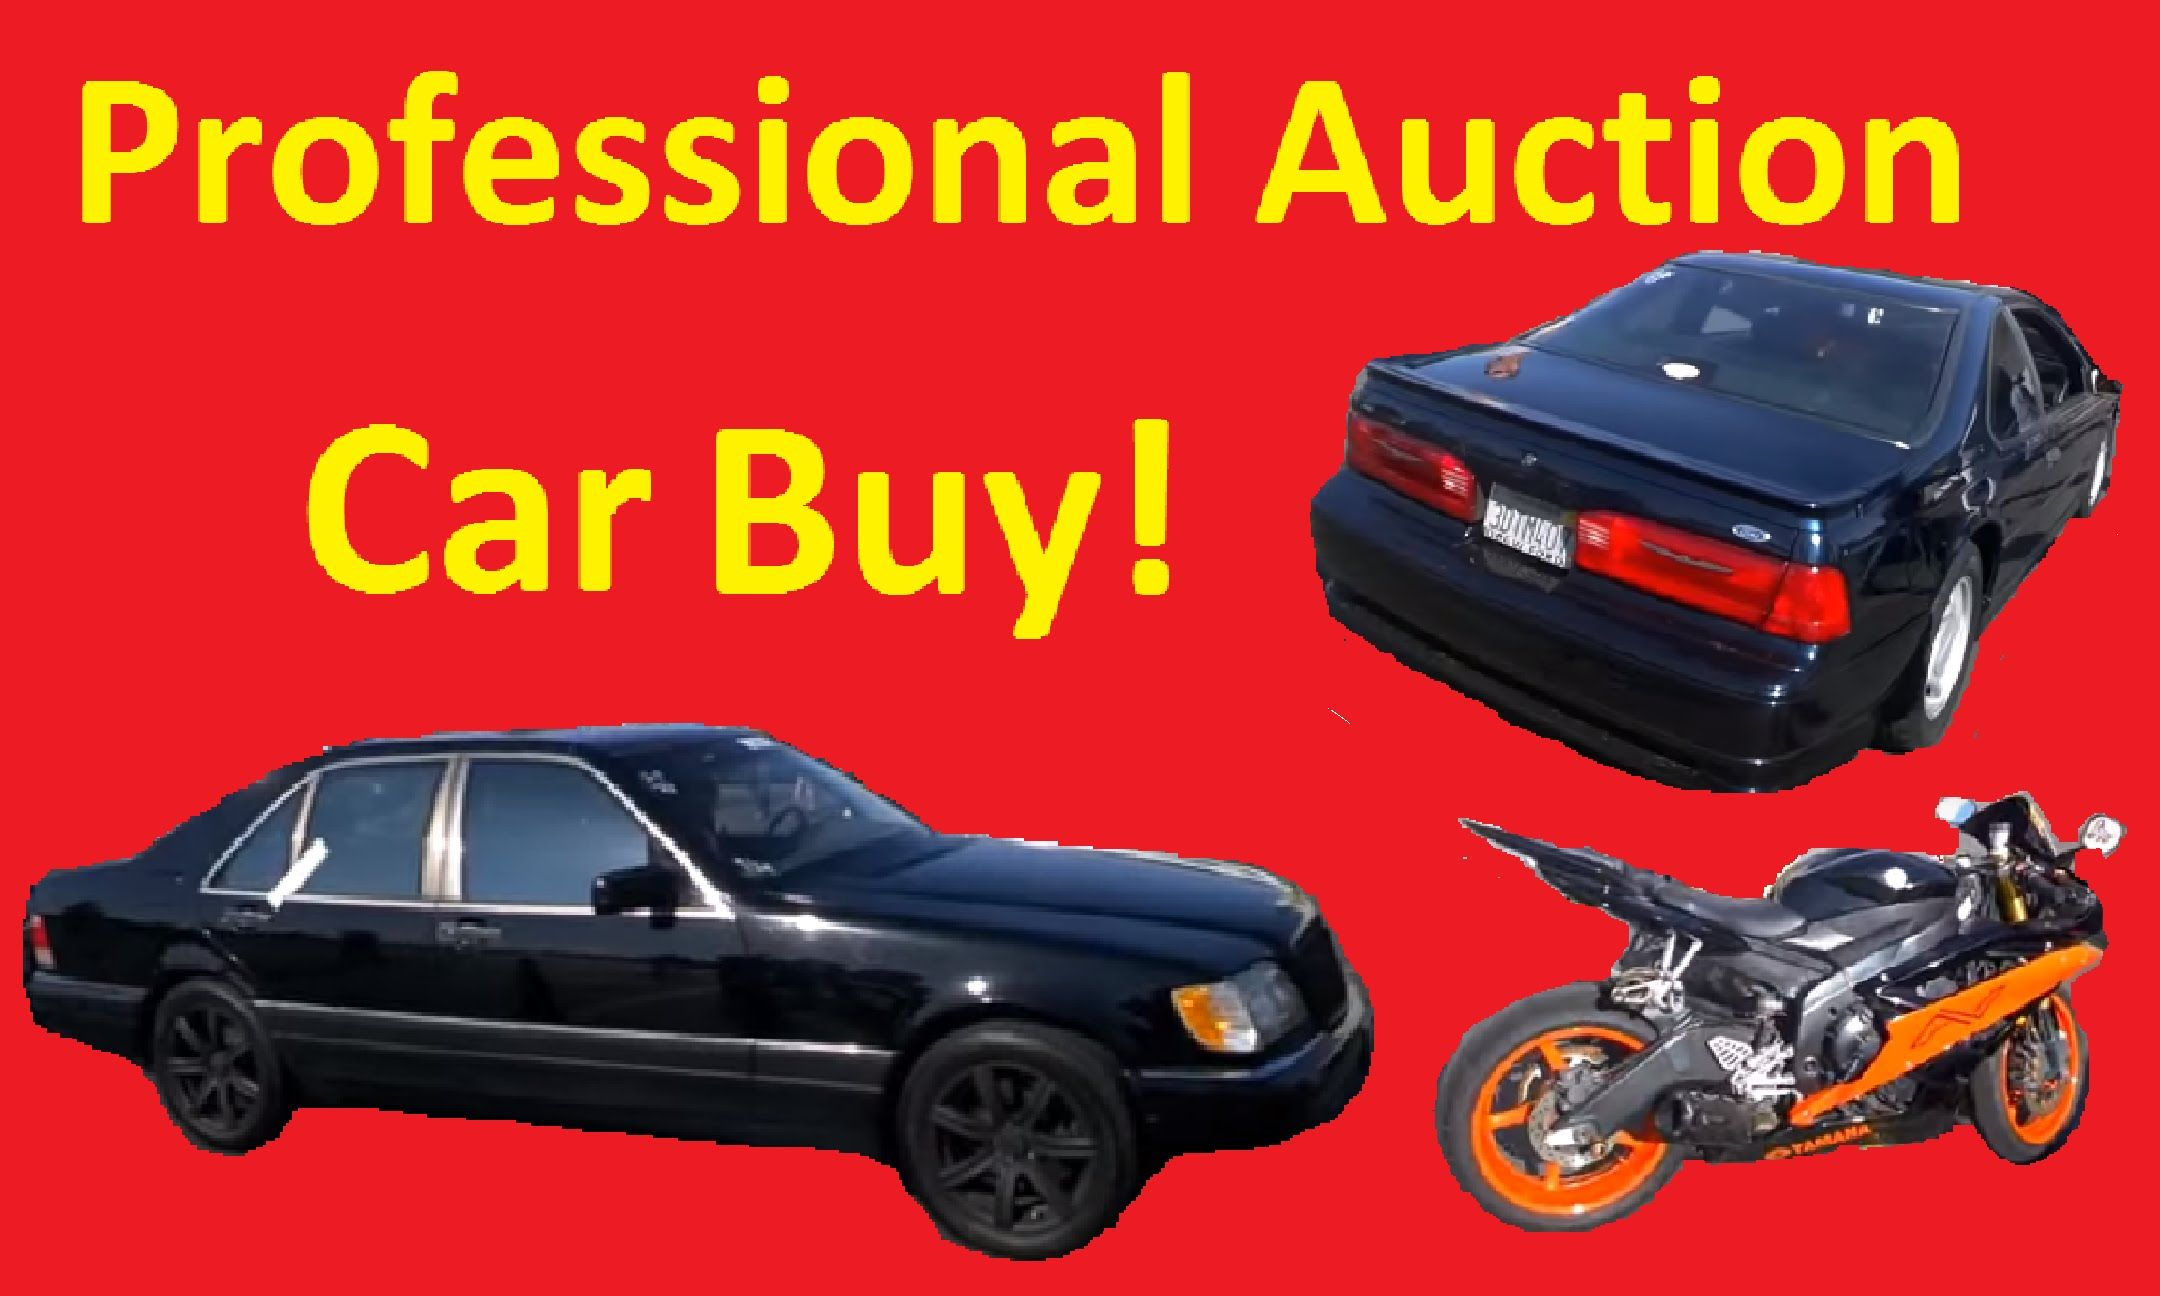 How To Buy Cars At Auction >> Professional Car Auction Buy Exposed Auto Auctions How